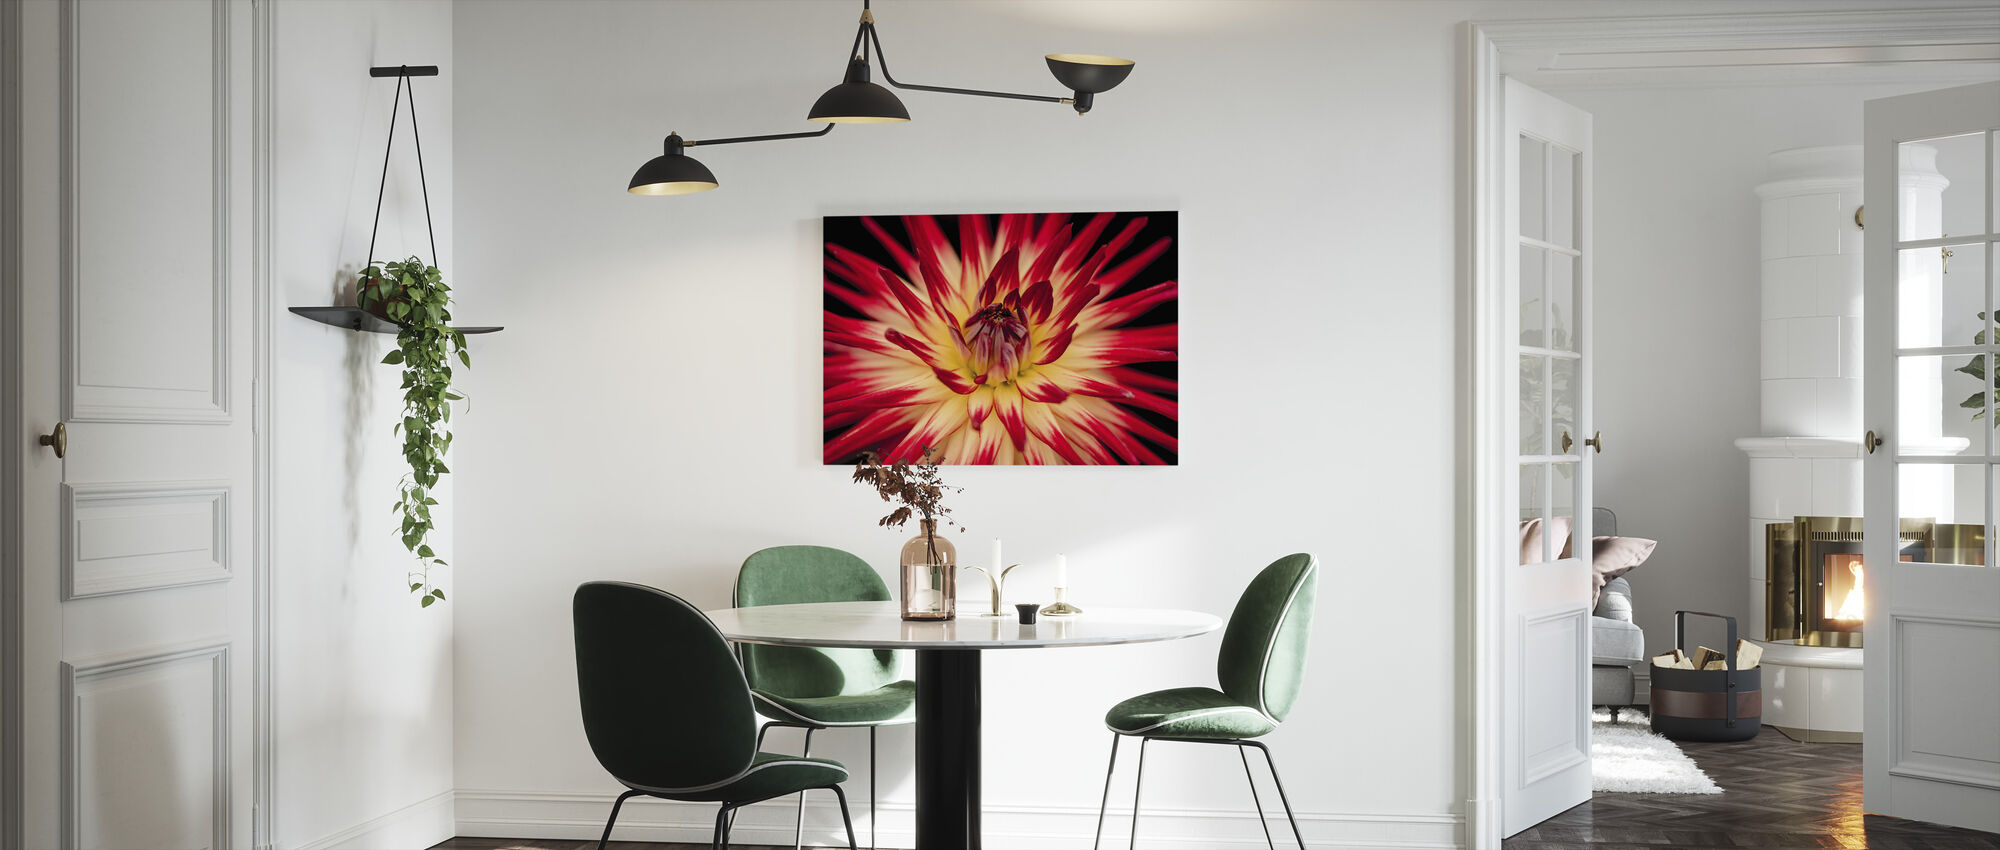 Yellow and Red Flower - Canvas print - Kitchen